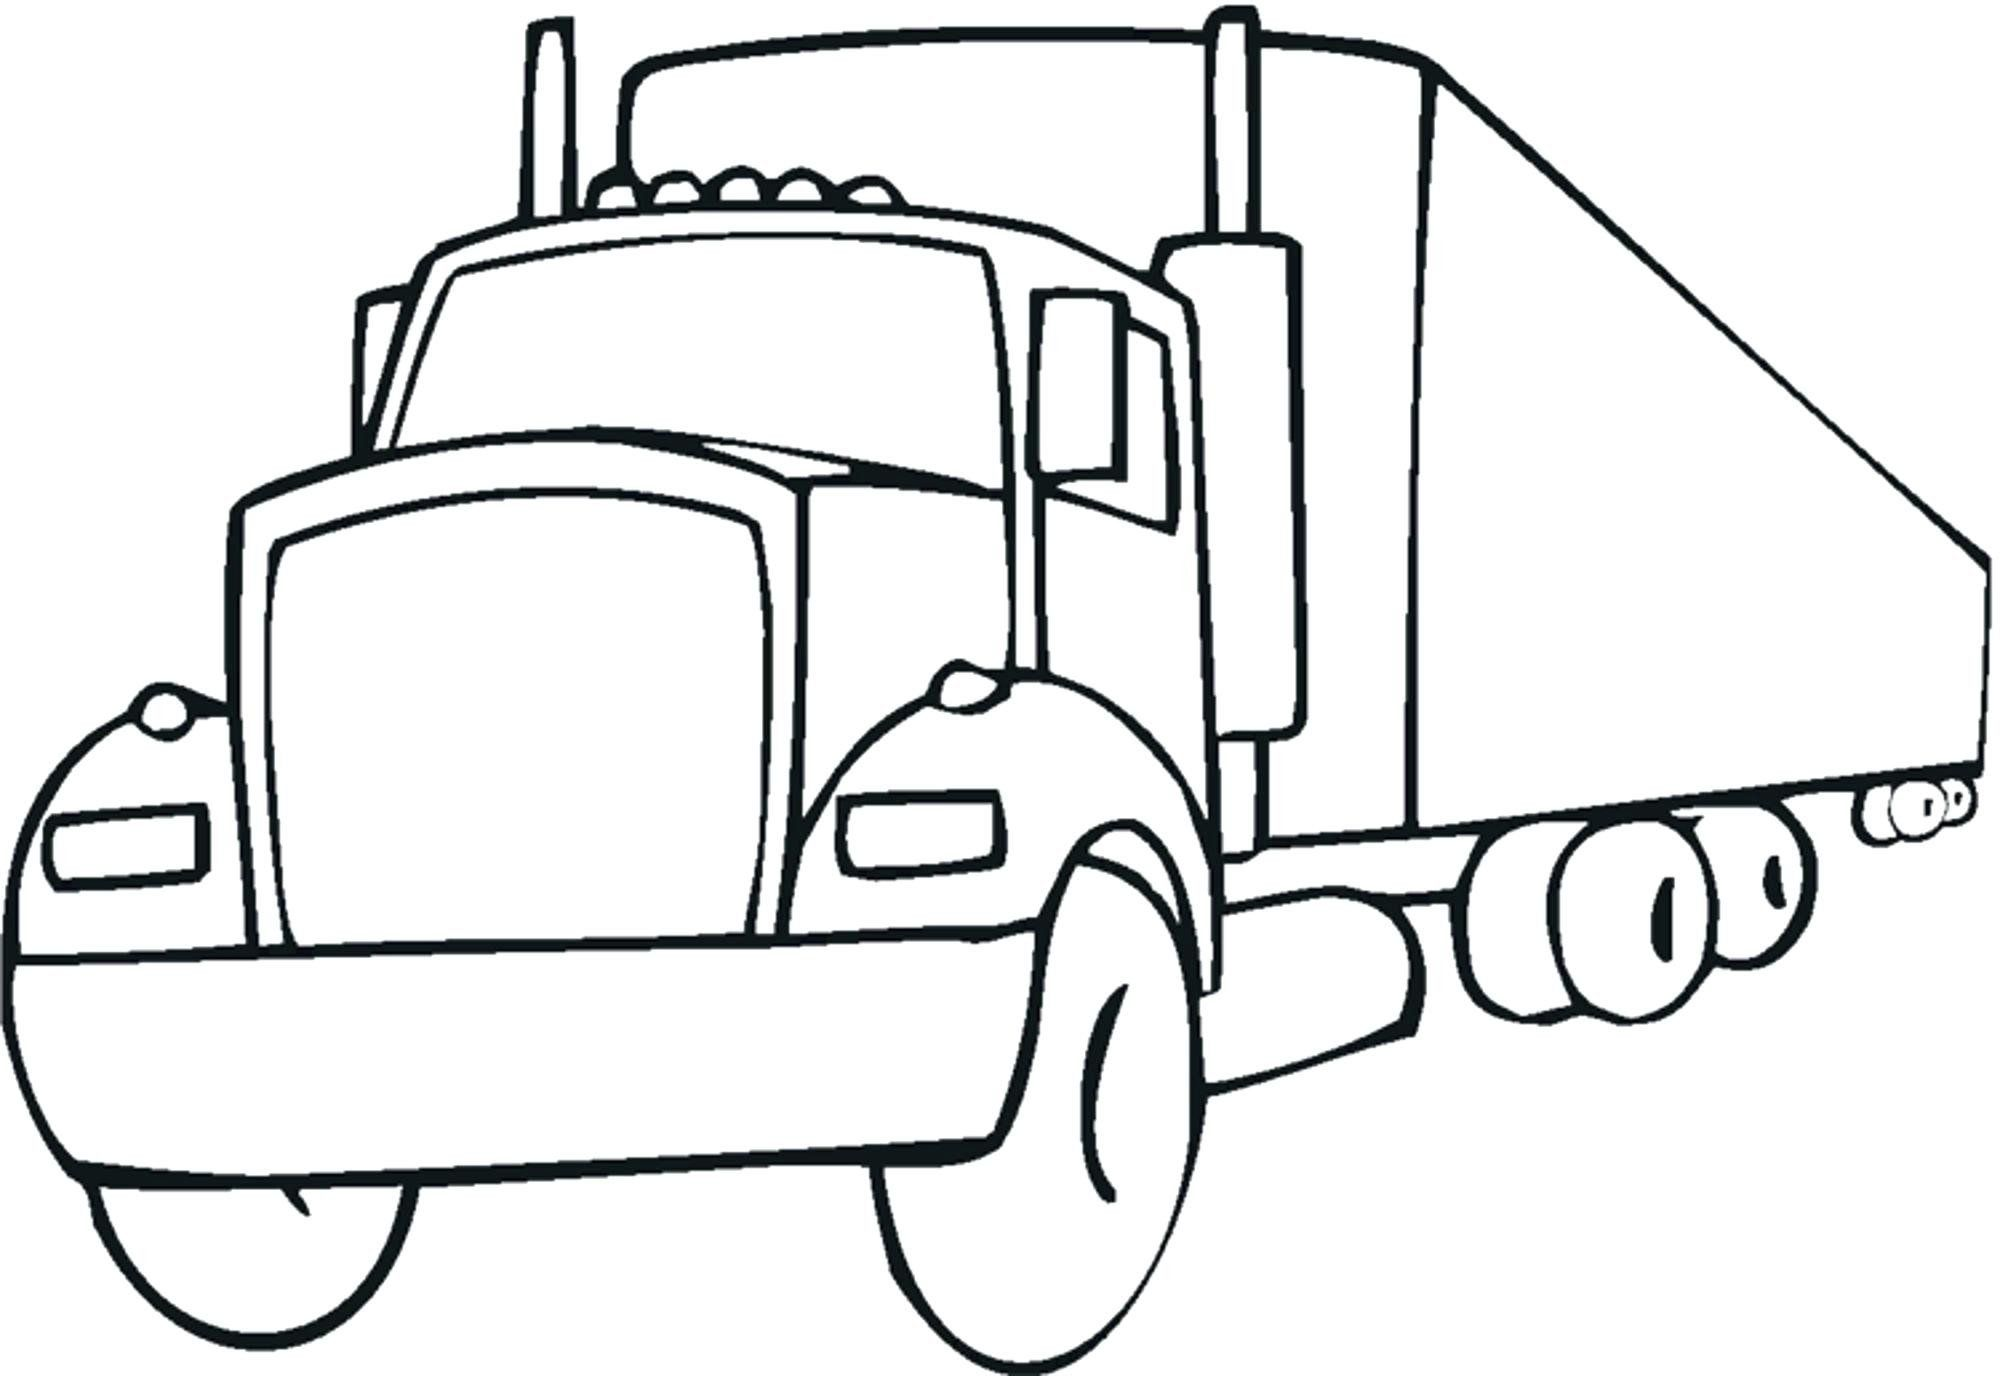 Fire Truck Coloring Pages Fresh Free Printable Coloring Pages Of Fire Trucks Mayhemcolor Truck Coloring Pages Coloring Pages For Boys Coloring Pages For Kids